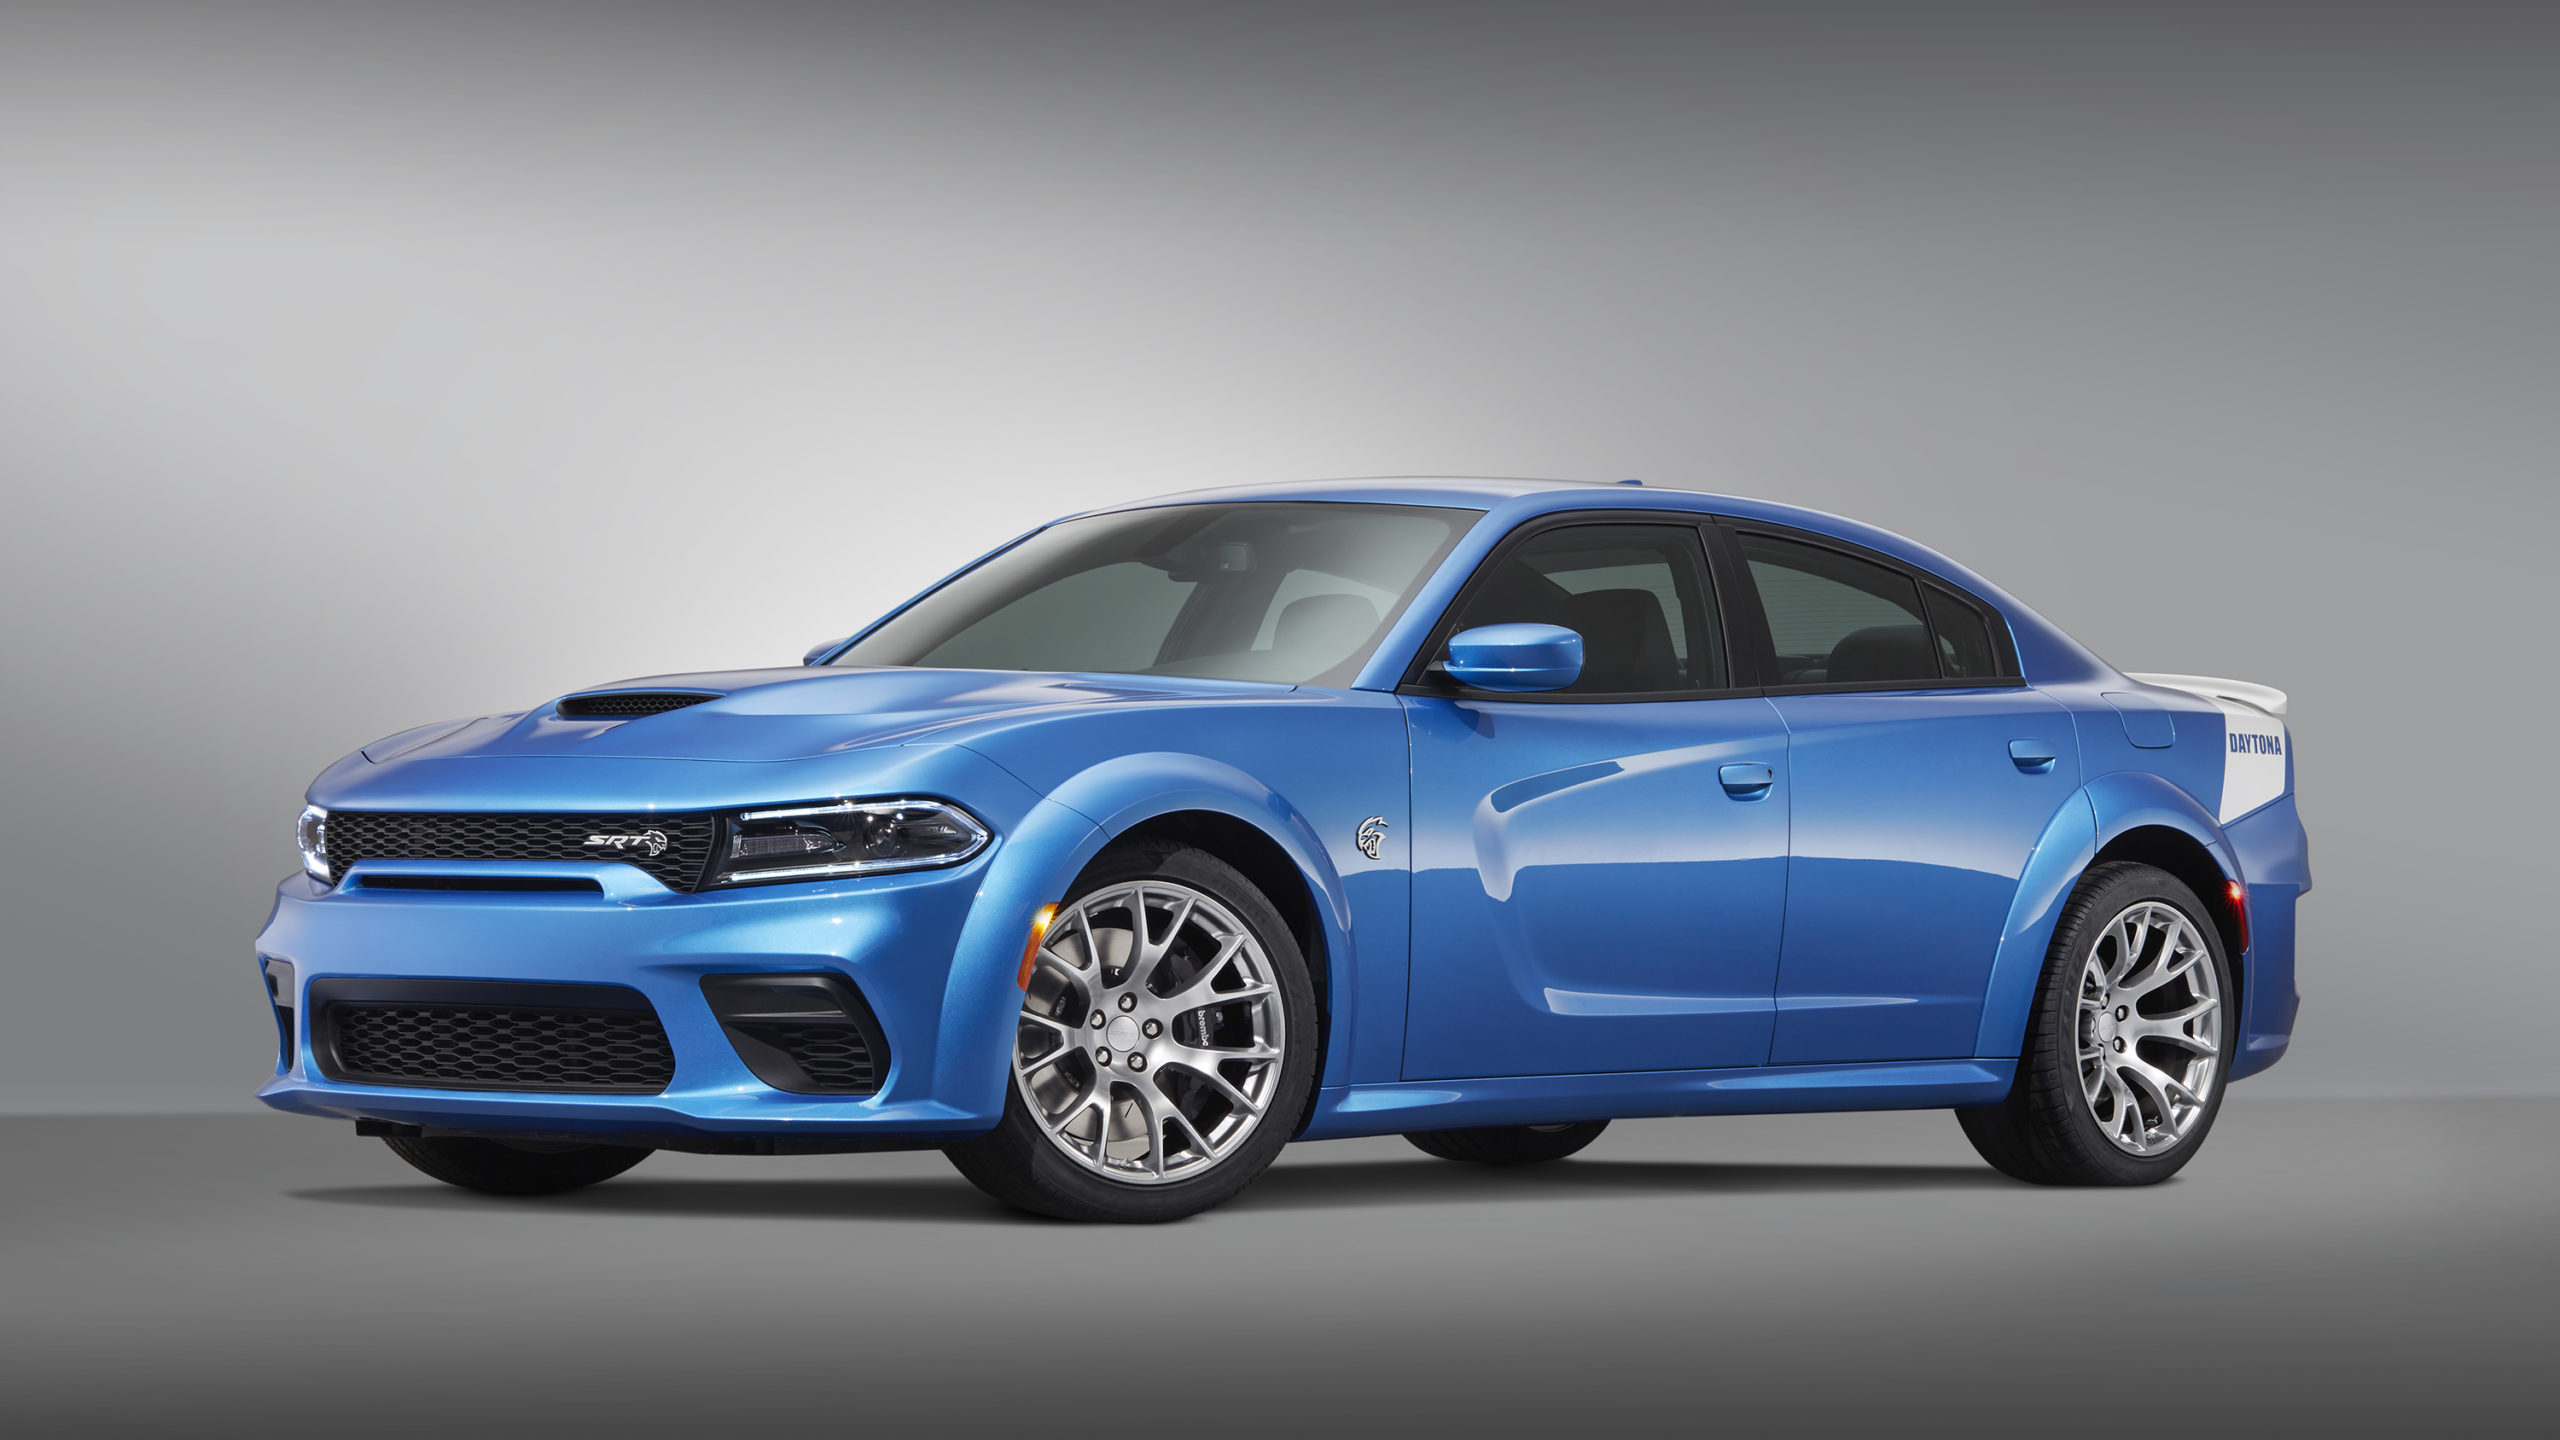 DODGE CHARGER DAYTONA SRT 2020